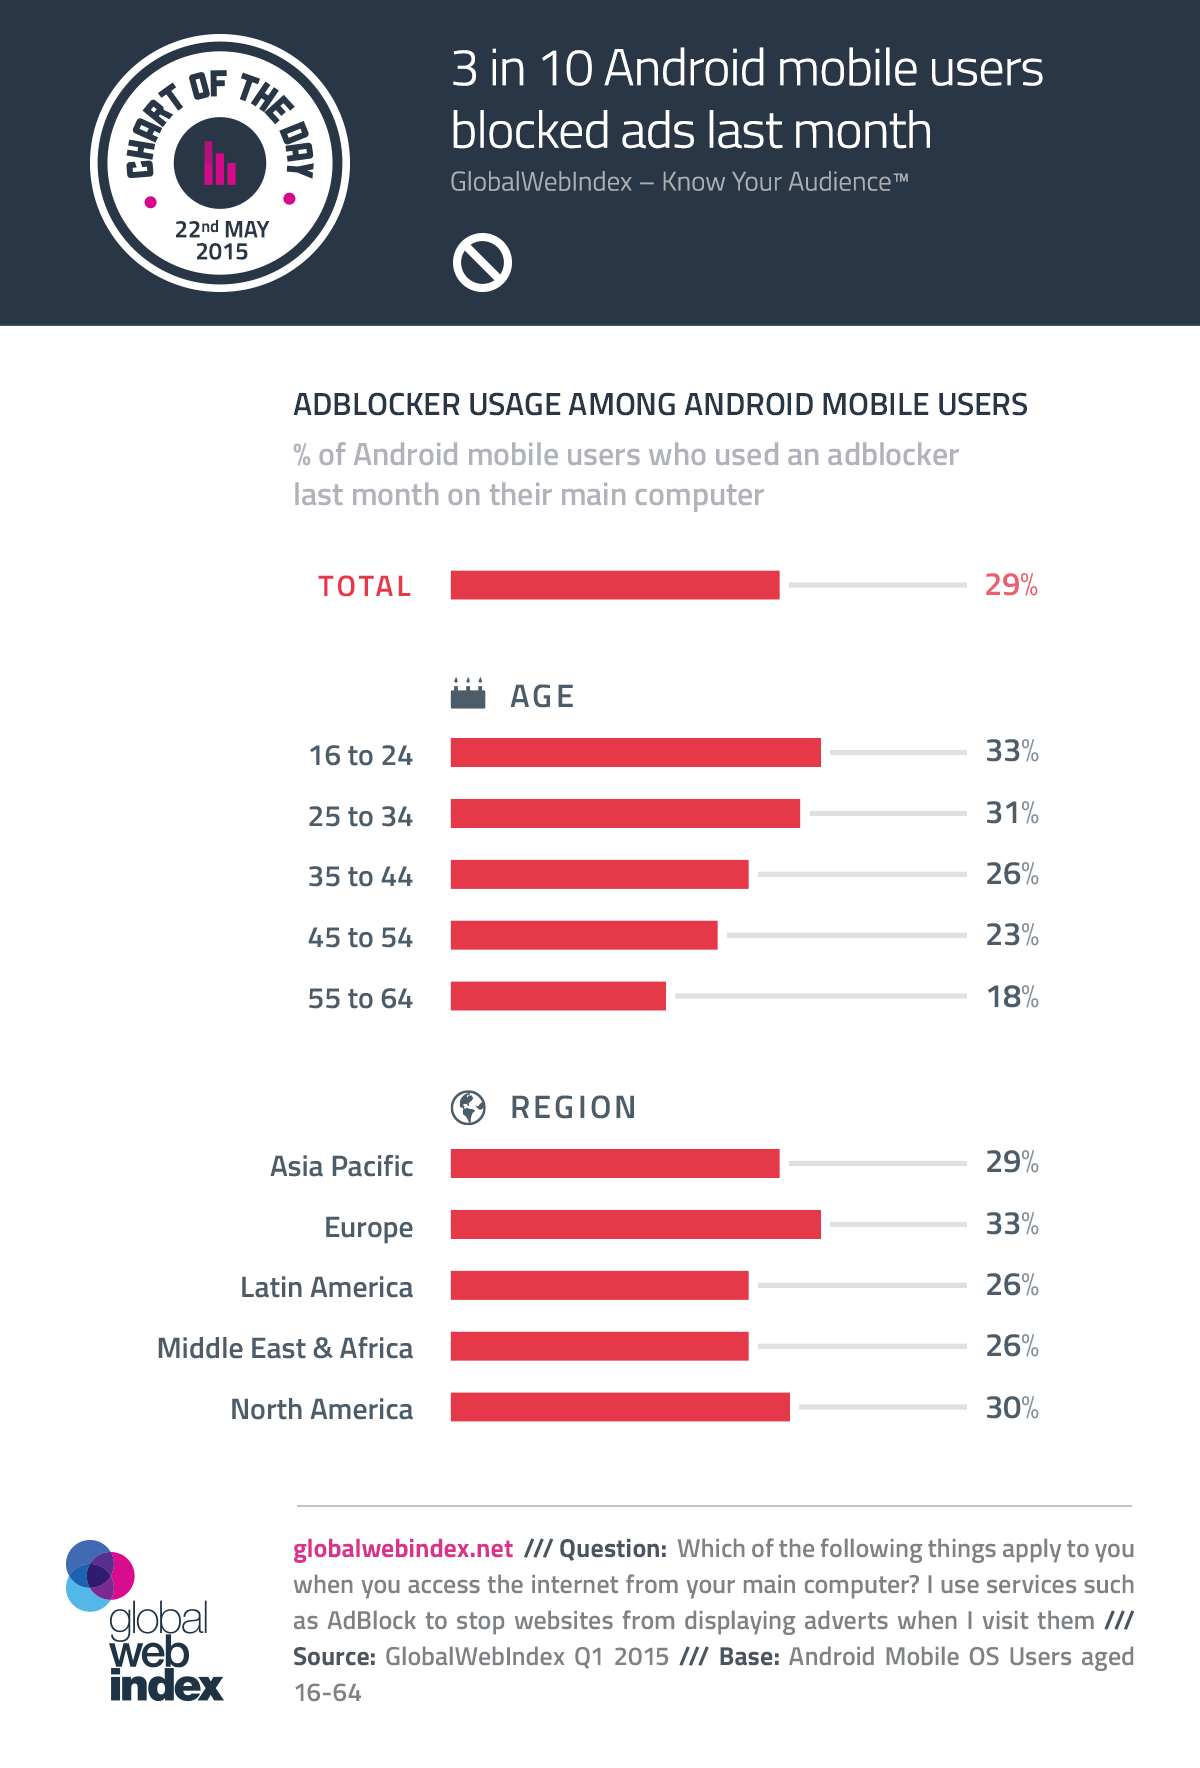 22nd-May-2015-3-in-10-Android-mobile-users-blocked-ads-last-month